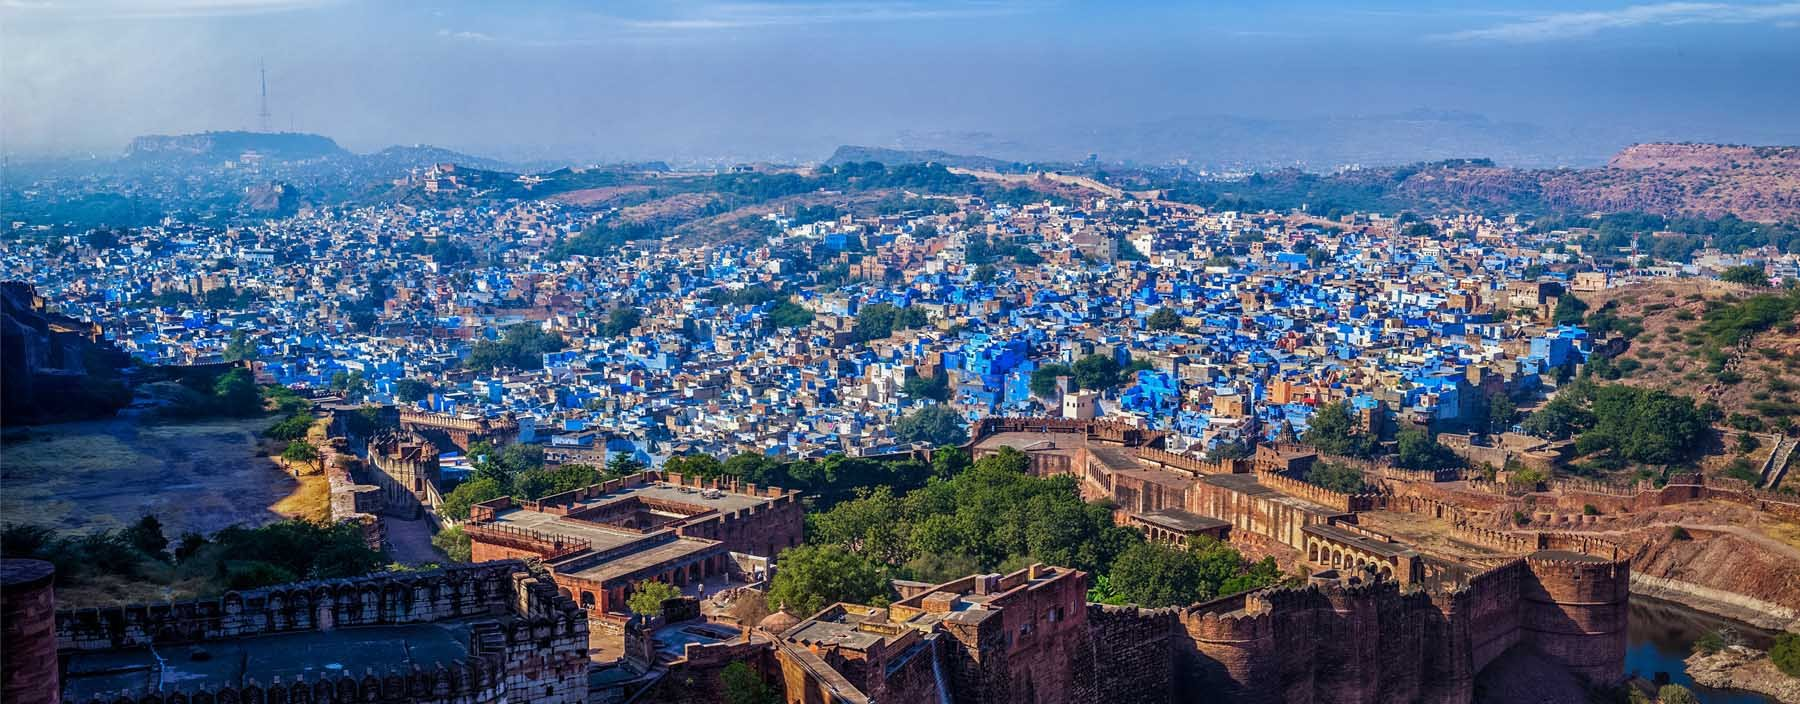 in, jodhpur, jodhpur, also known as blue city.jpg